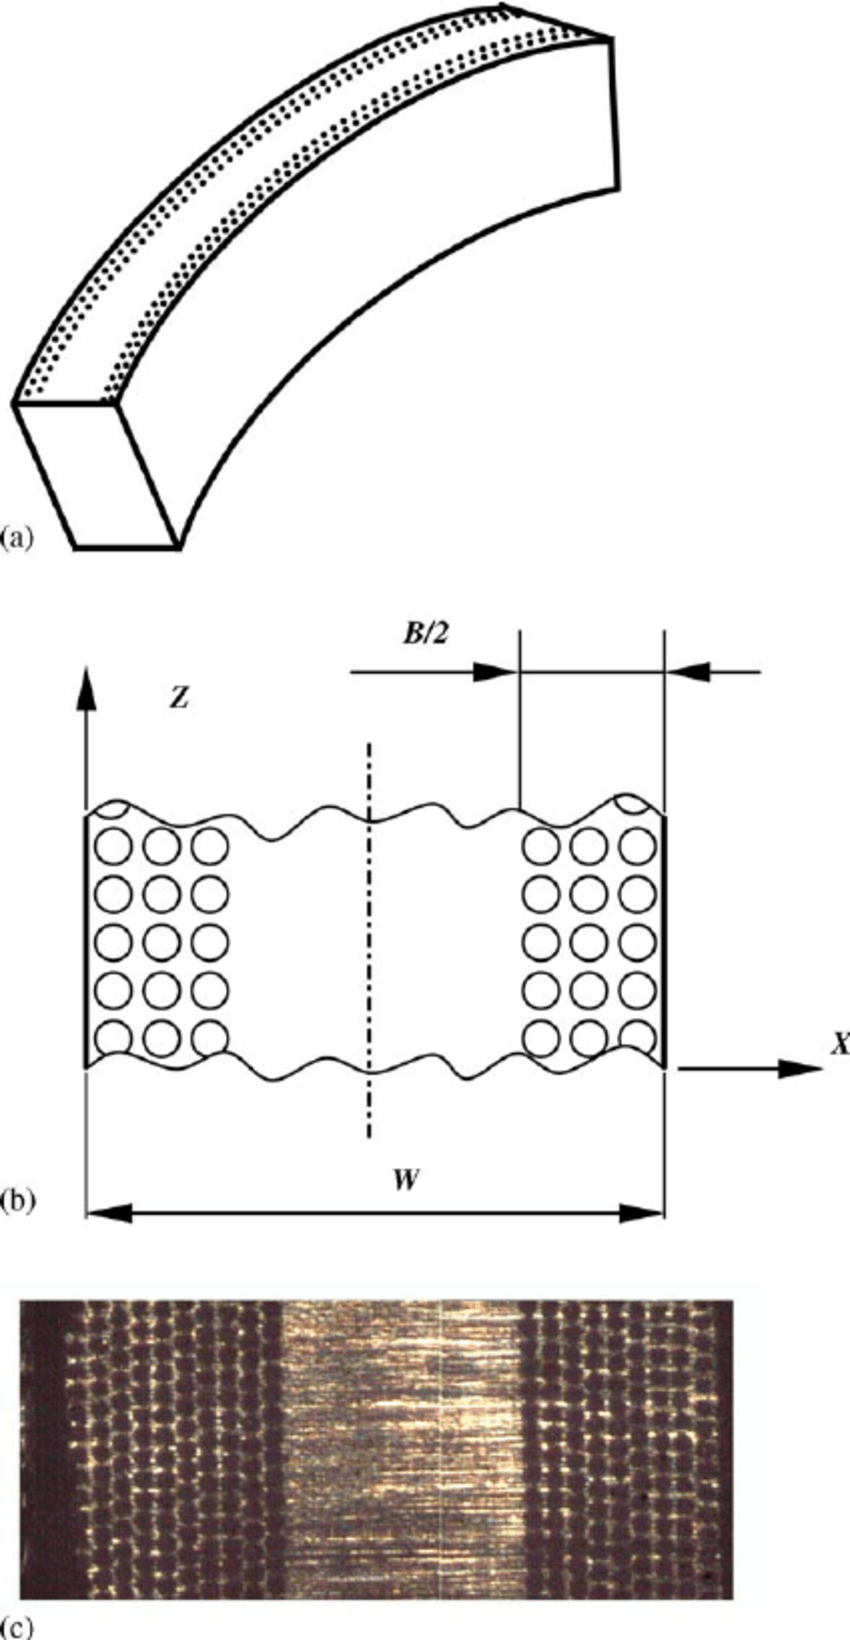 medium resolution of partial lst flat face piston ring a schematic of a partial lst ring